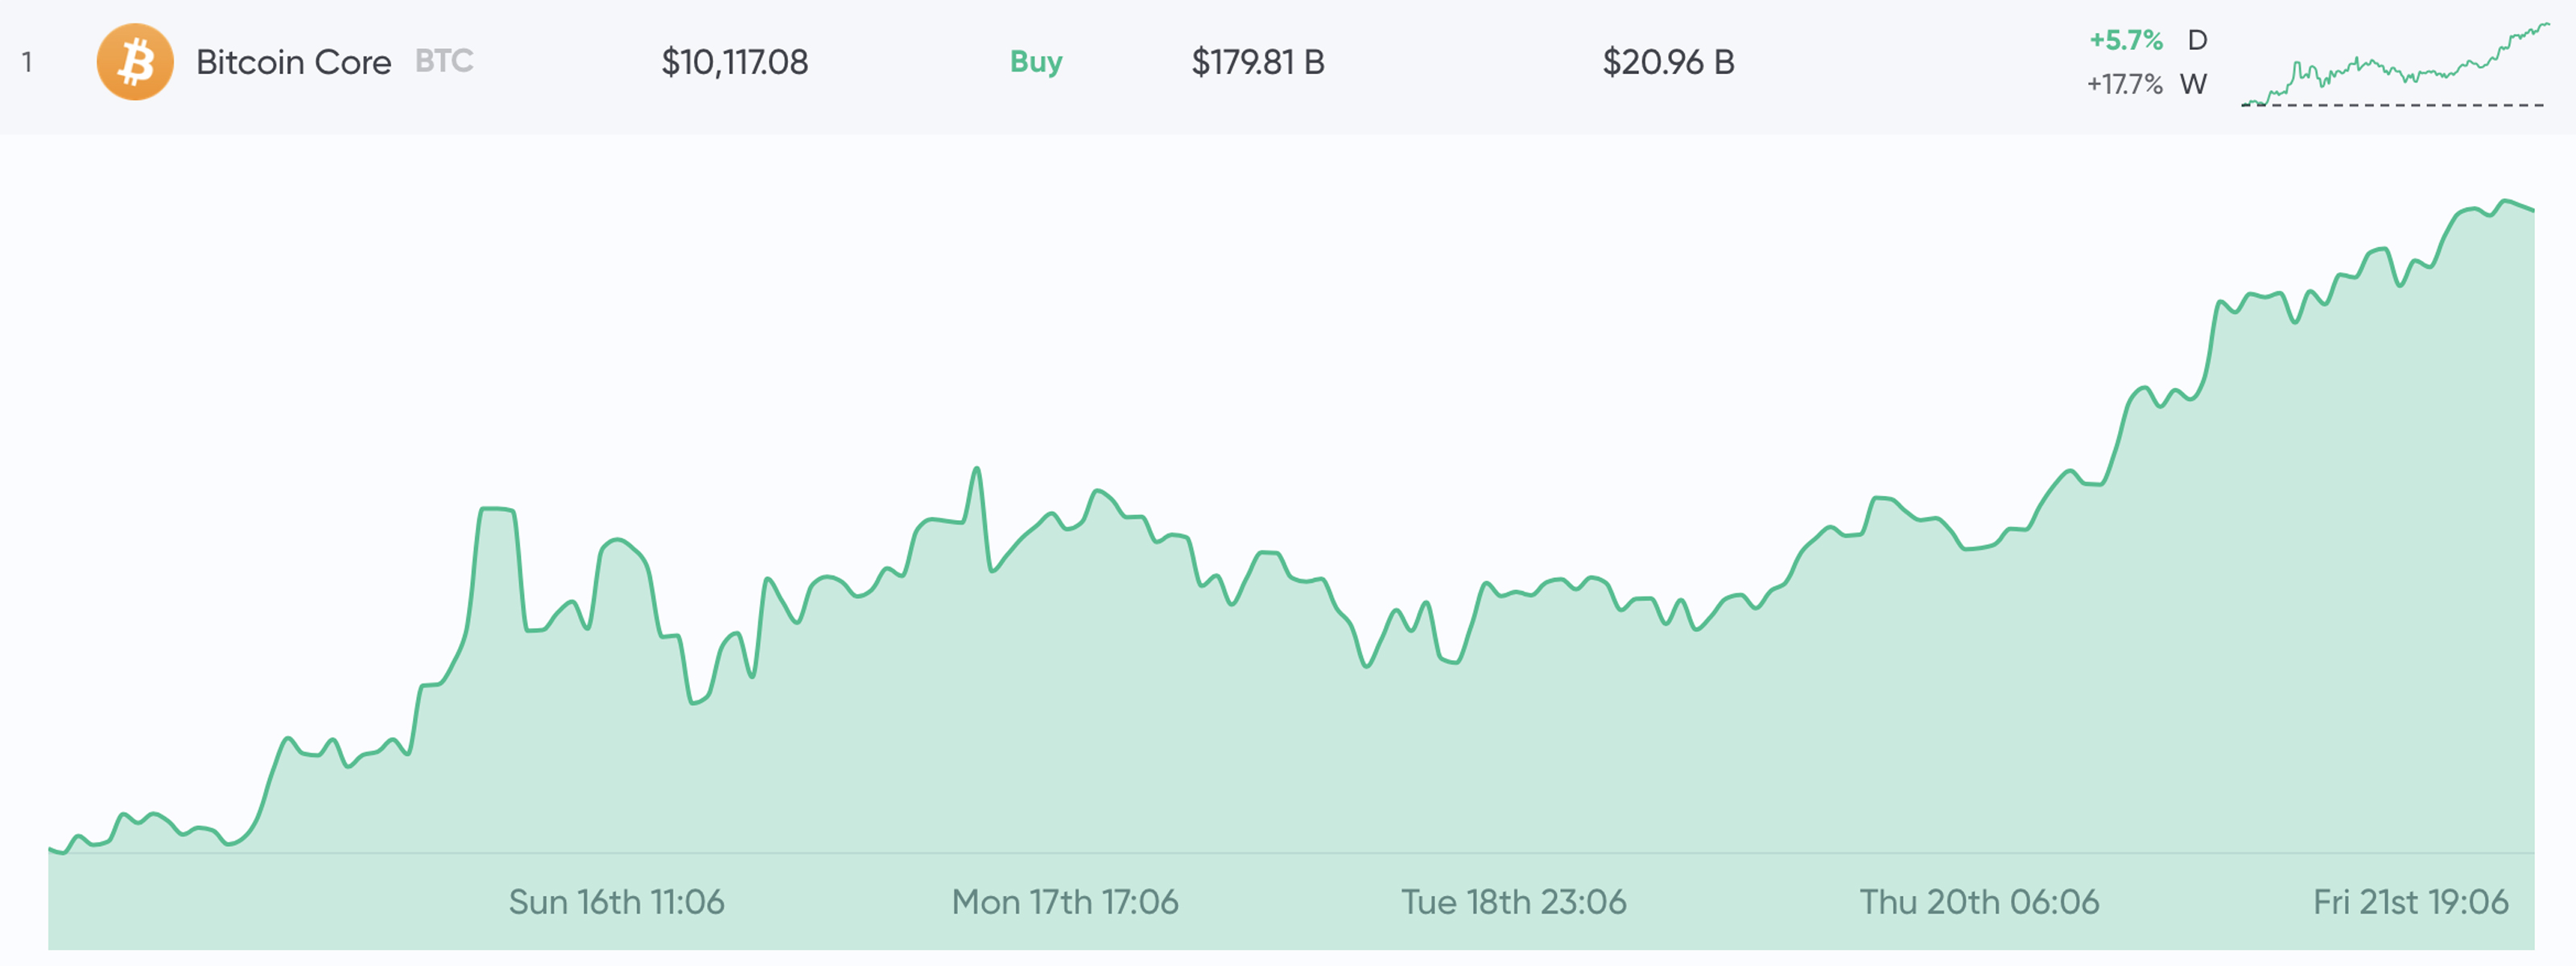 More than One Year Later, BTC Price Skyrockets Past $10K